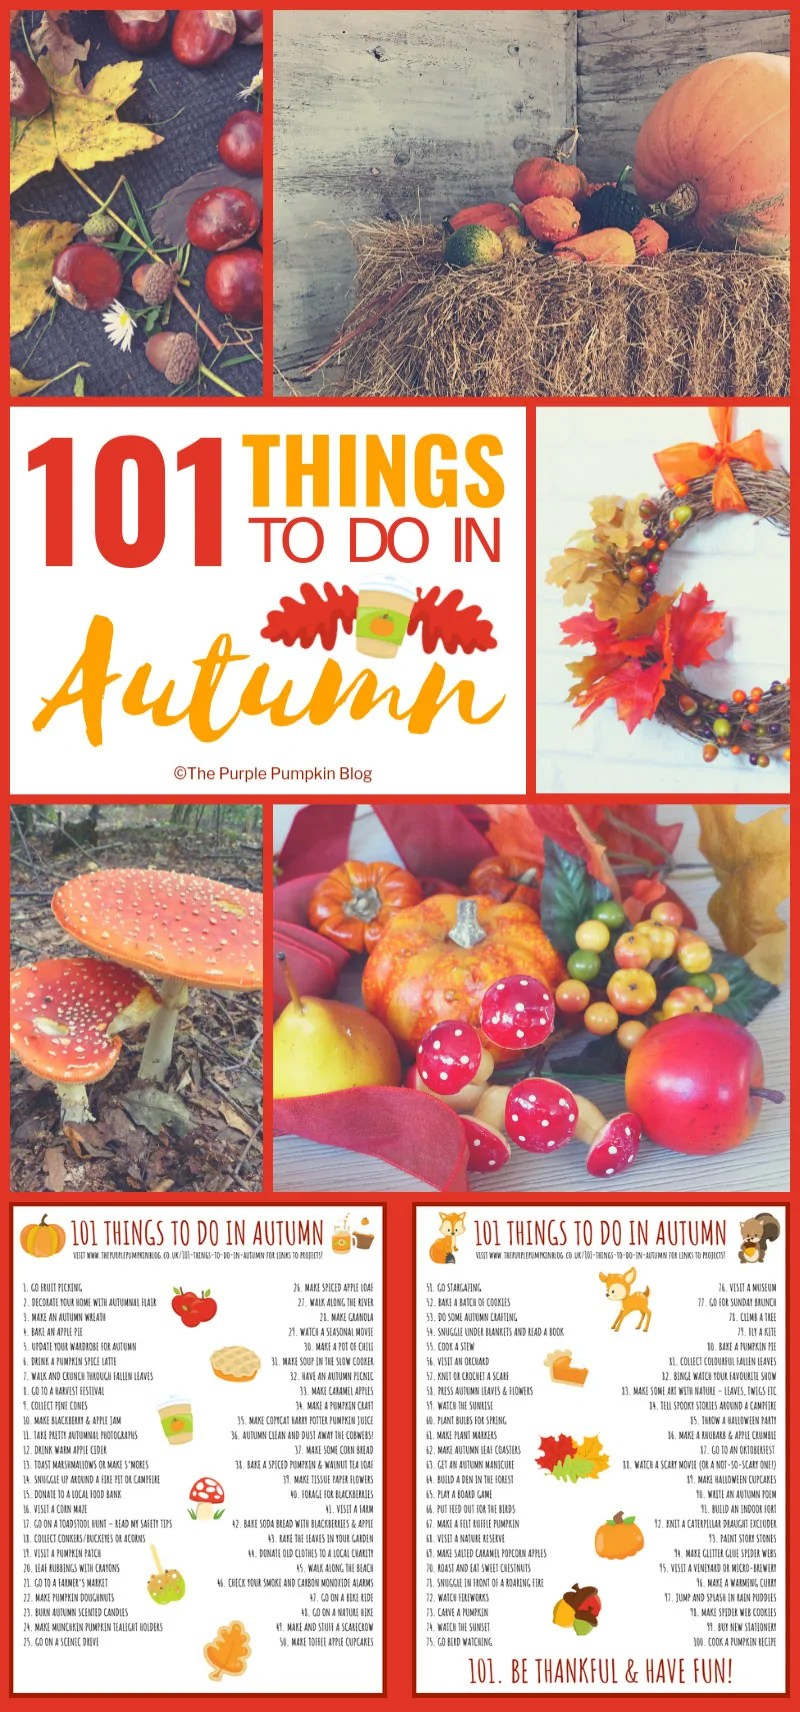 101 Things To Do In Autumn - with a variety of indoor and outdoor activities, as well as recipes, crafts and other fun ideas for the fall season!